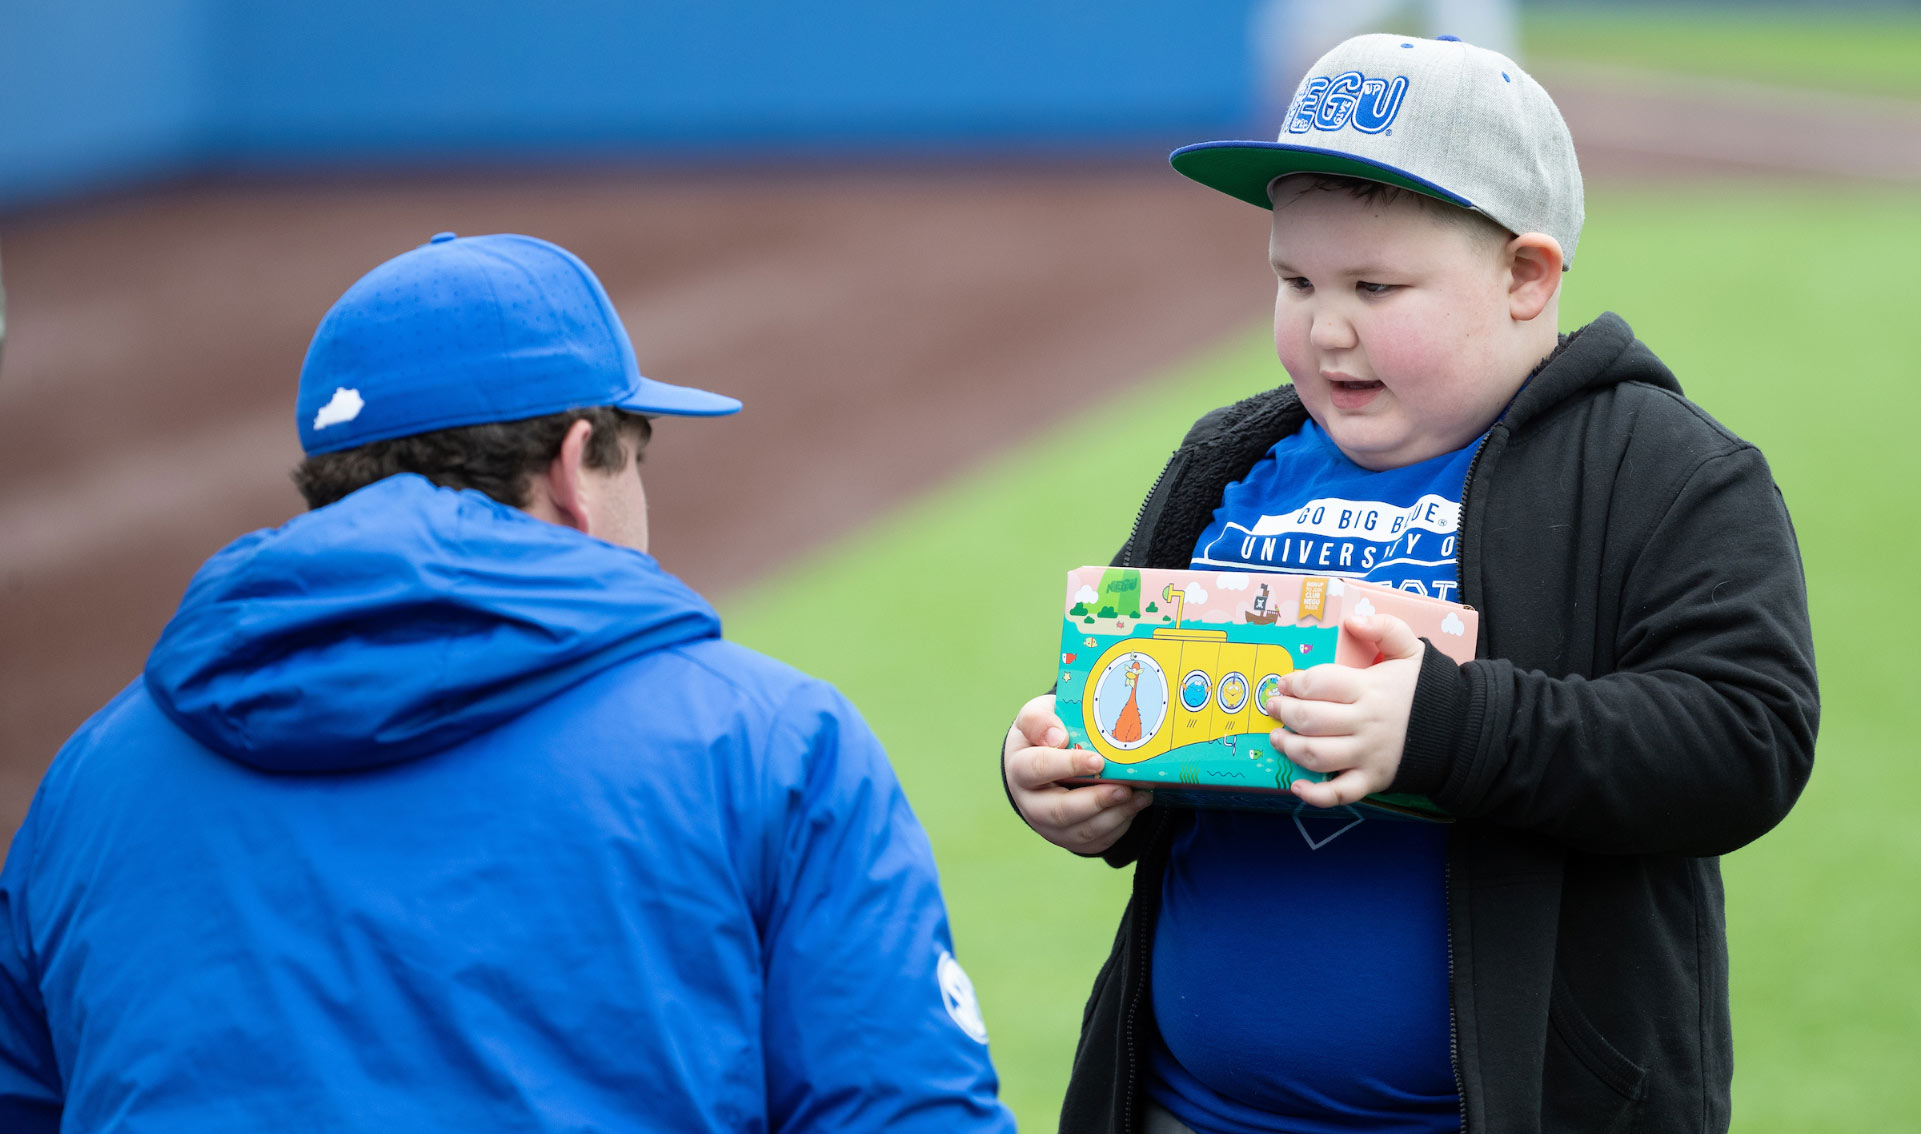 T.J. crouches down to talk to a young kid wearing a baseball hat. The kid is holding a brightly-colored box. T.J. is wearing a baseball cap and a blue jacket.